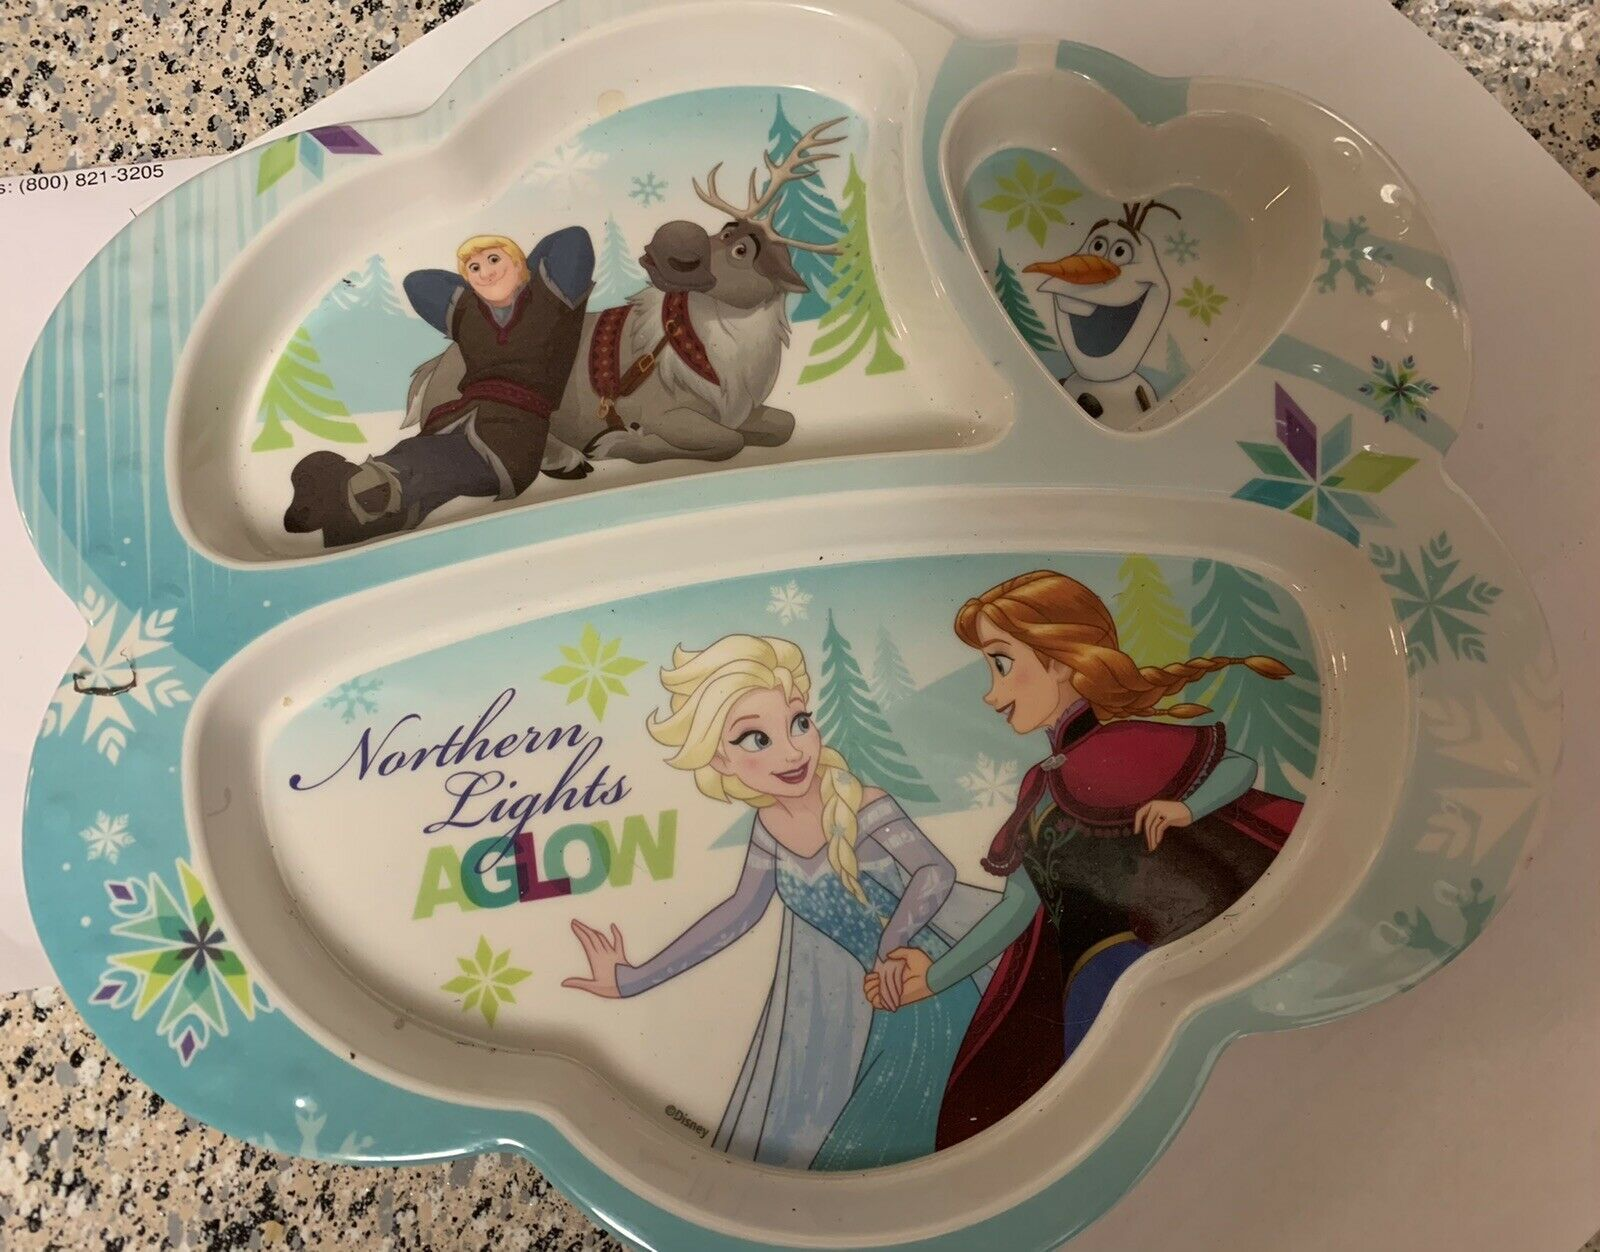 Frozen Northern Lights Aglow 3+ Toddler Plate - $10.40